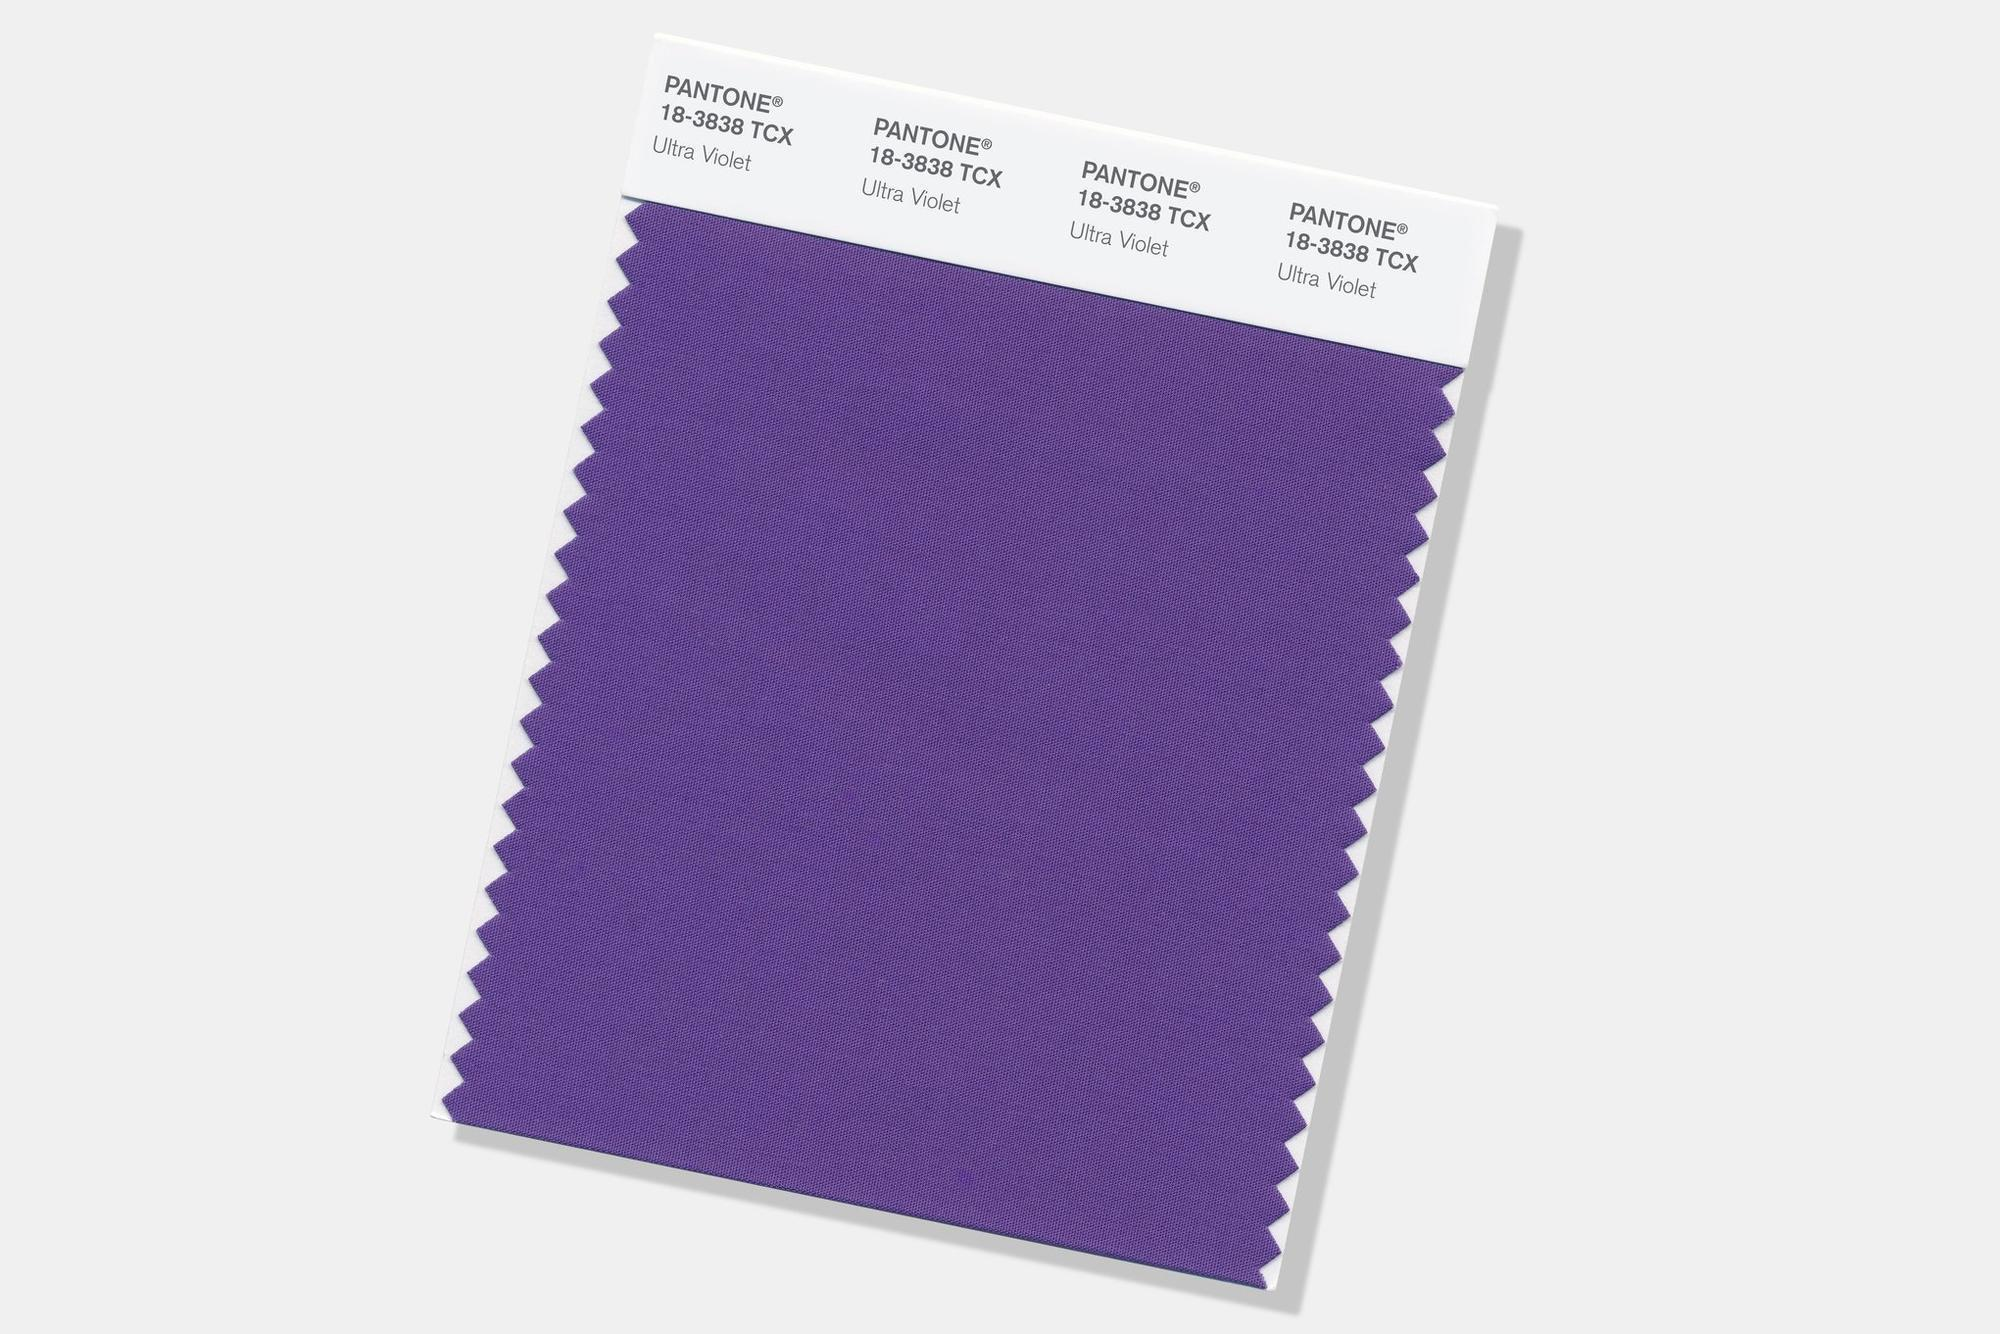 Pantone\u0027s Color of the Year for 2018 is a Princely purple - LA Times